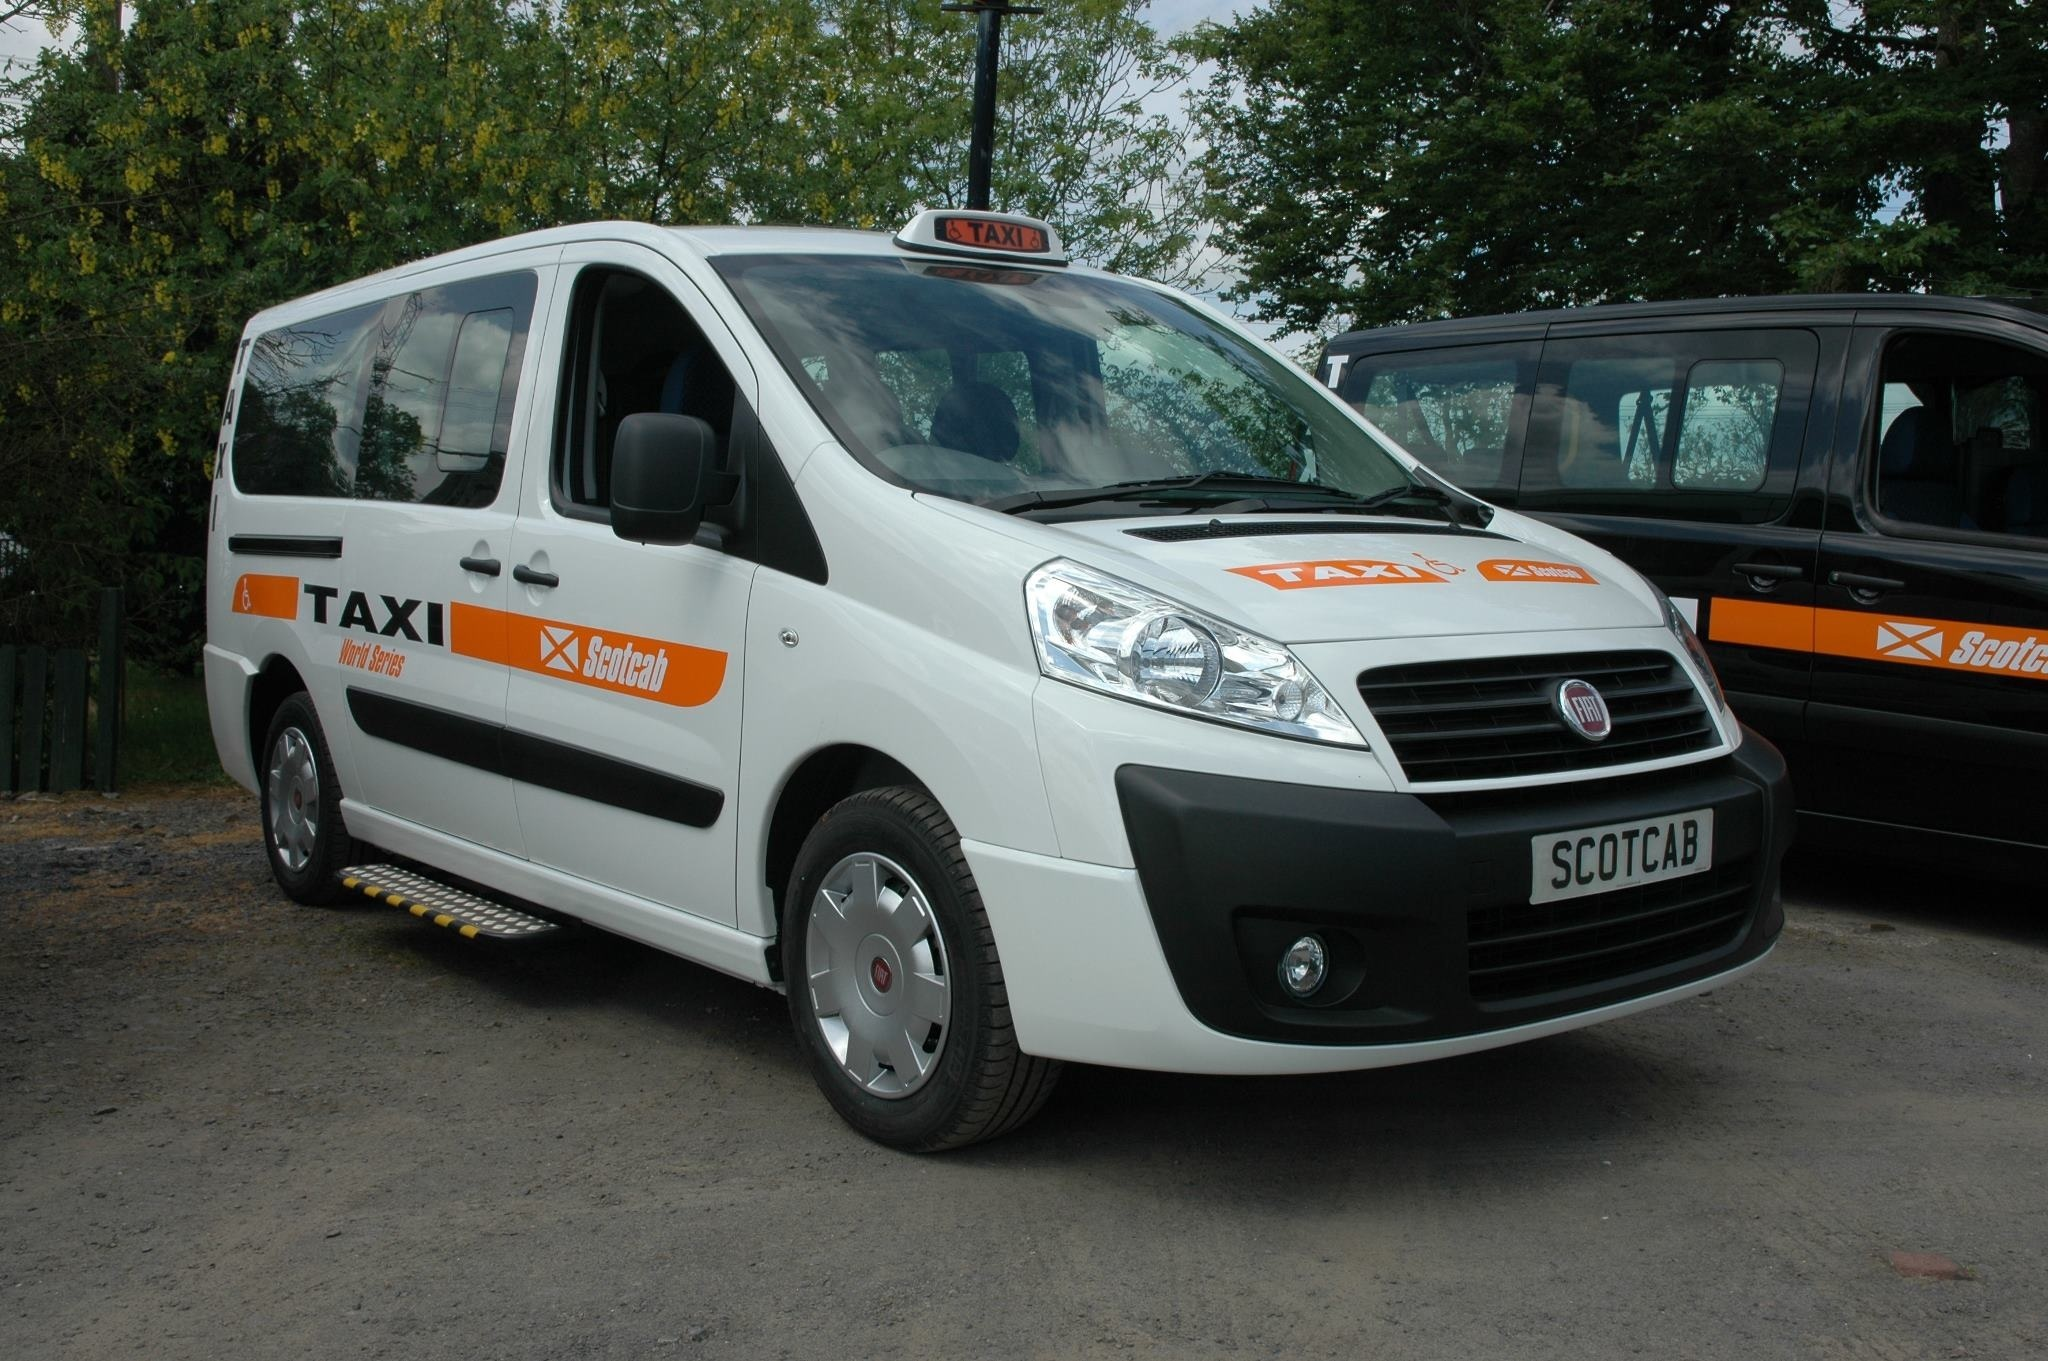 A & J Taxis Service uk second photo.